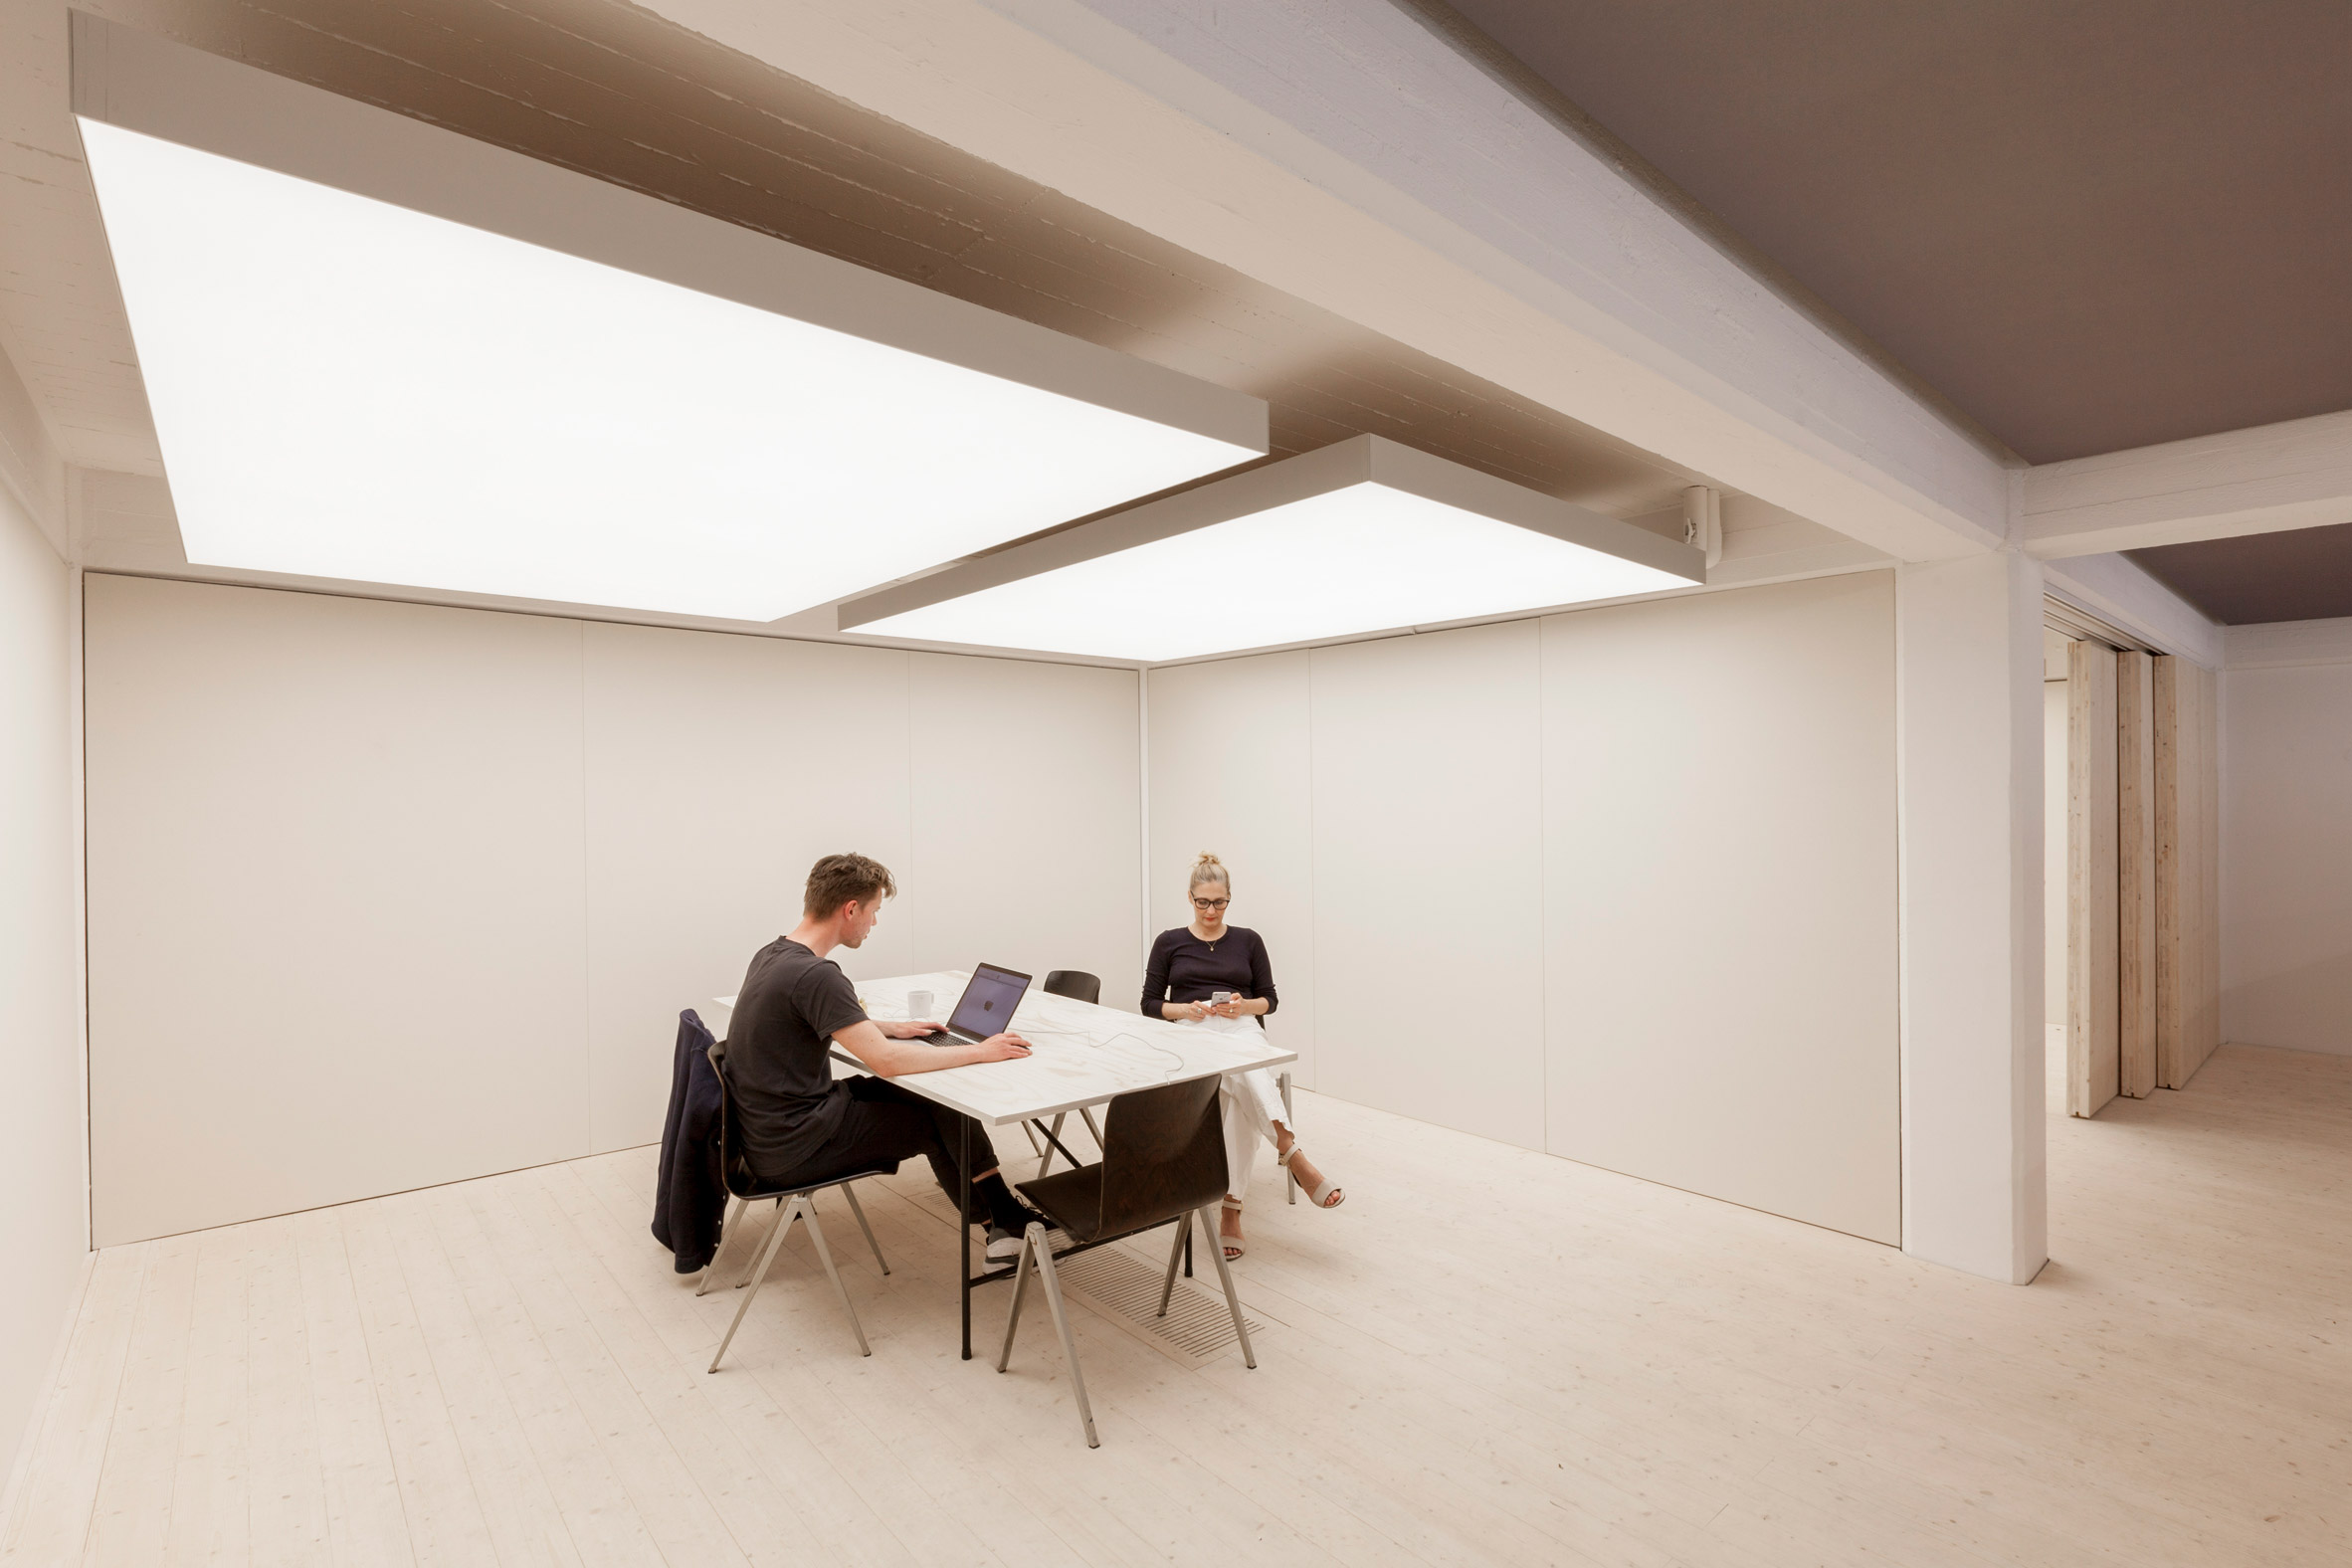 Kvadrat Soft Cell studio by Caruso St John